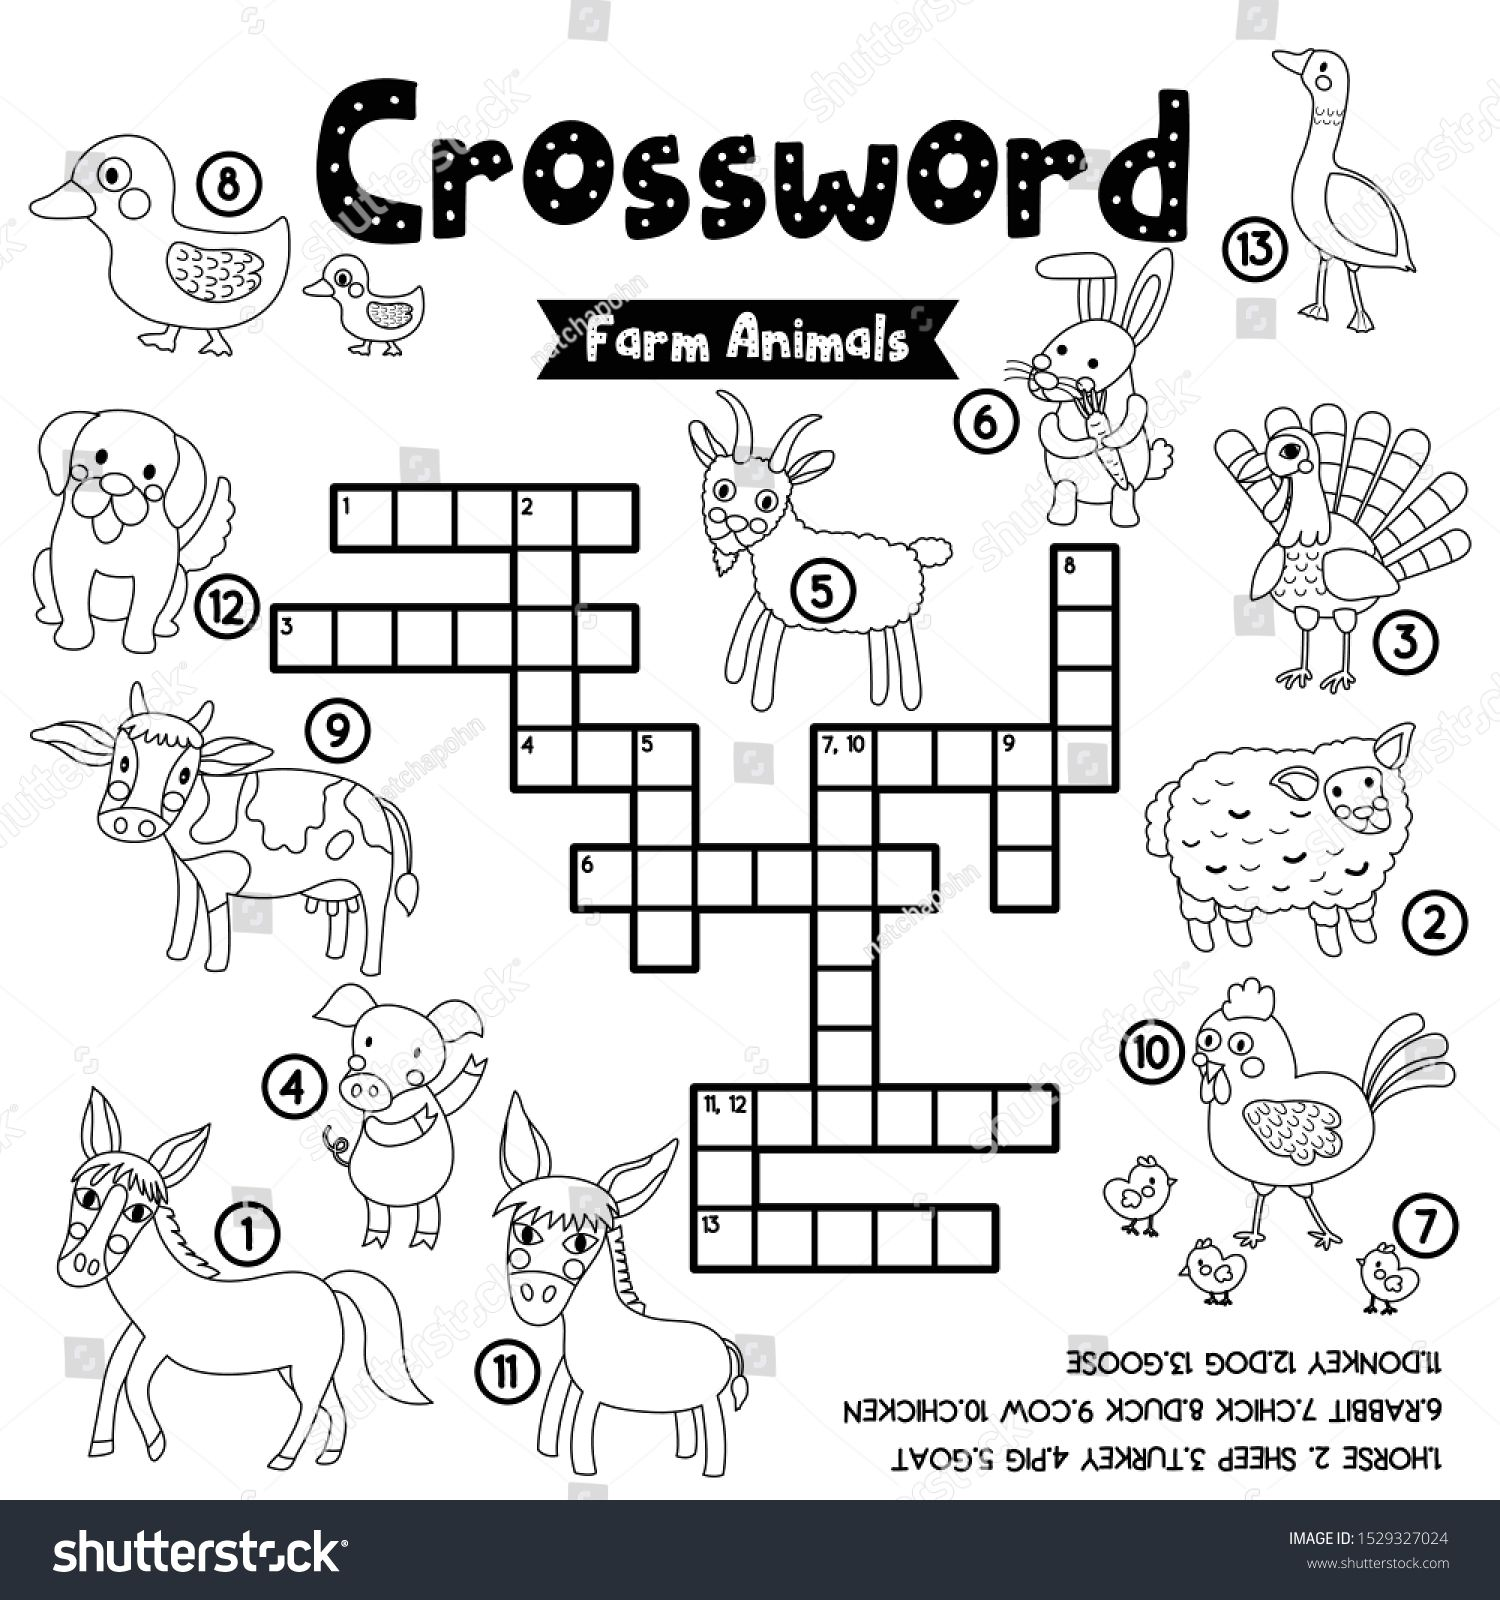 Crosswords Puzzle Game Of Farm Animals For Preschool Kids